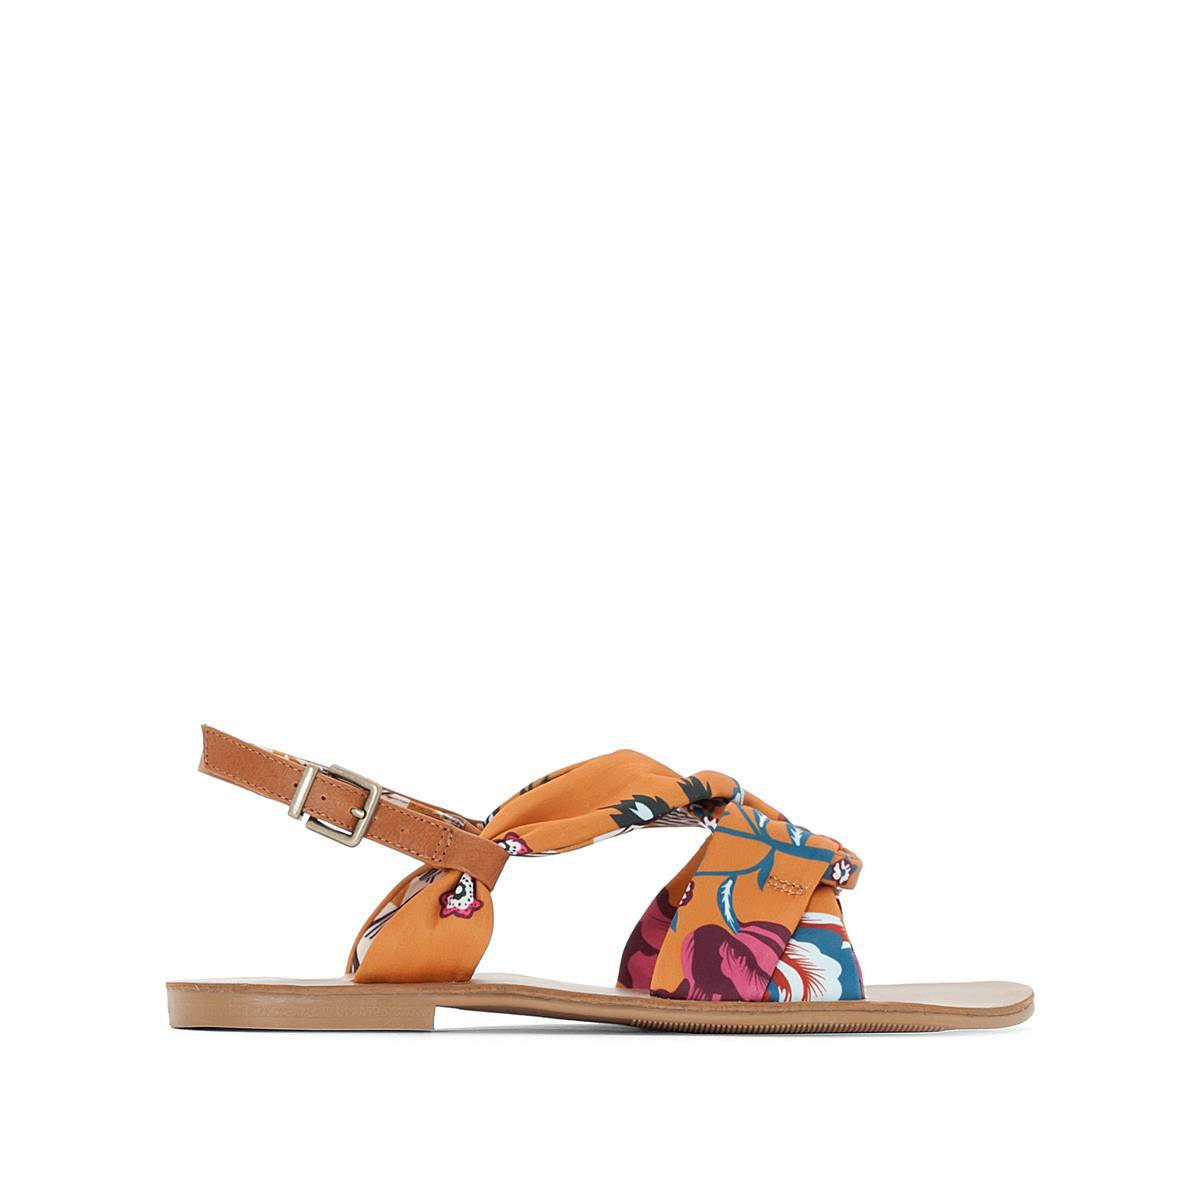 La Redoute Collections Sandalias con lacitos estampados otros